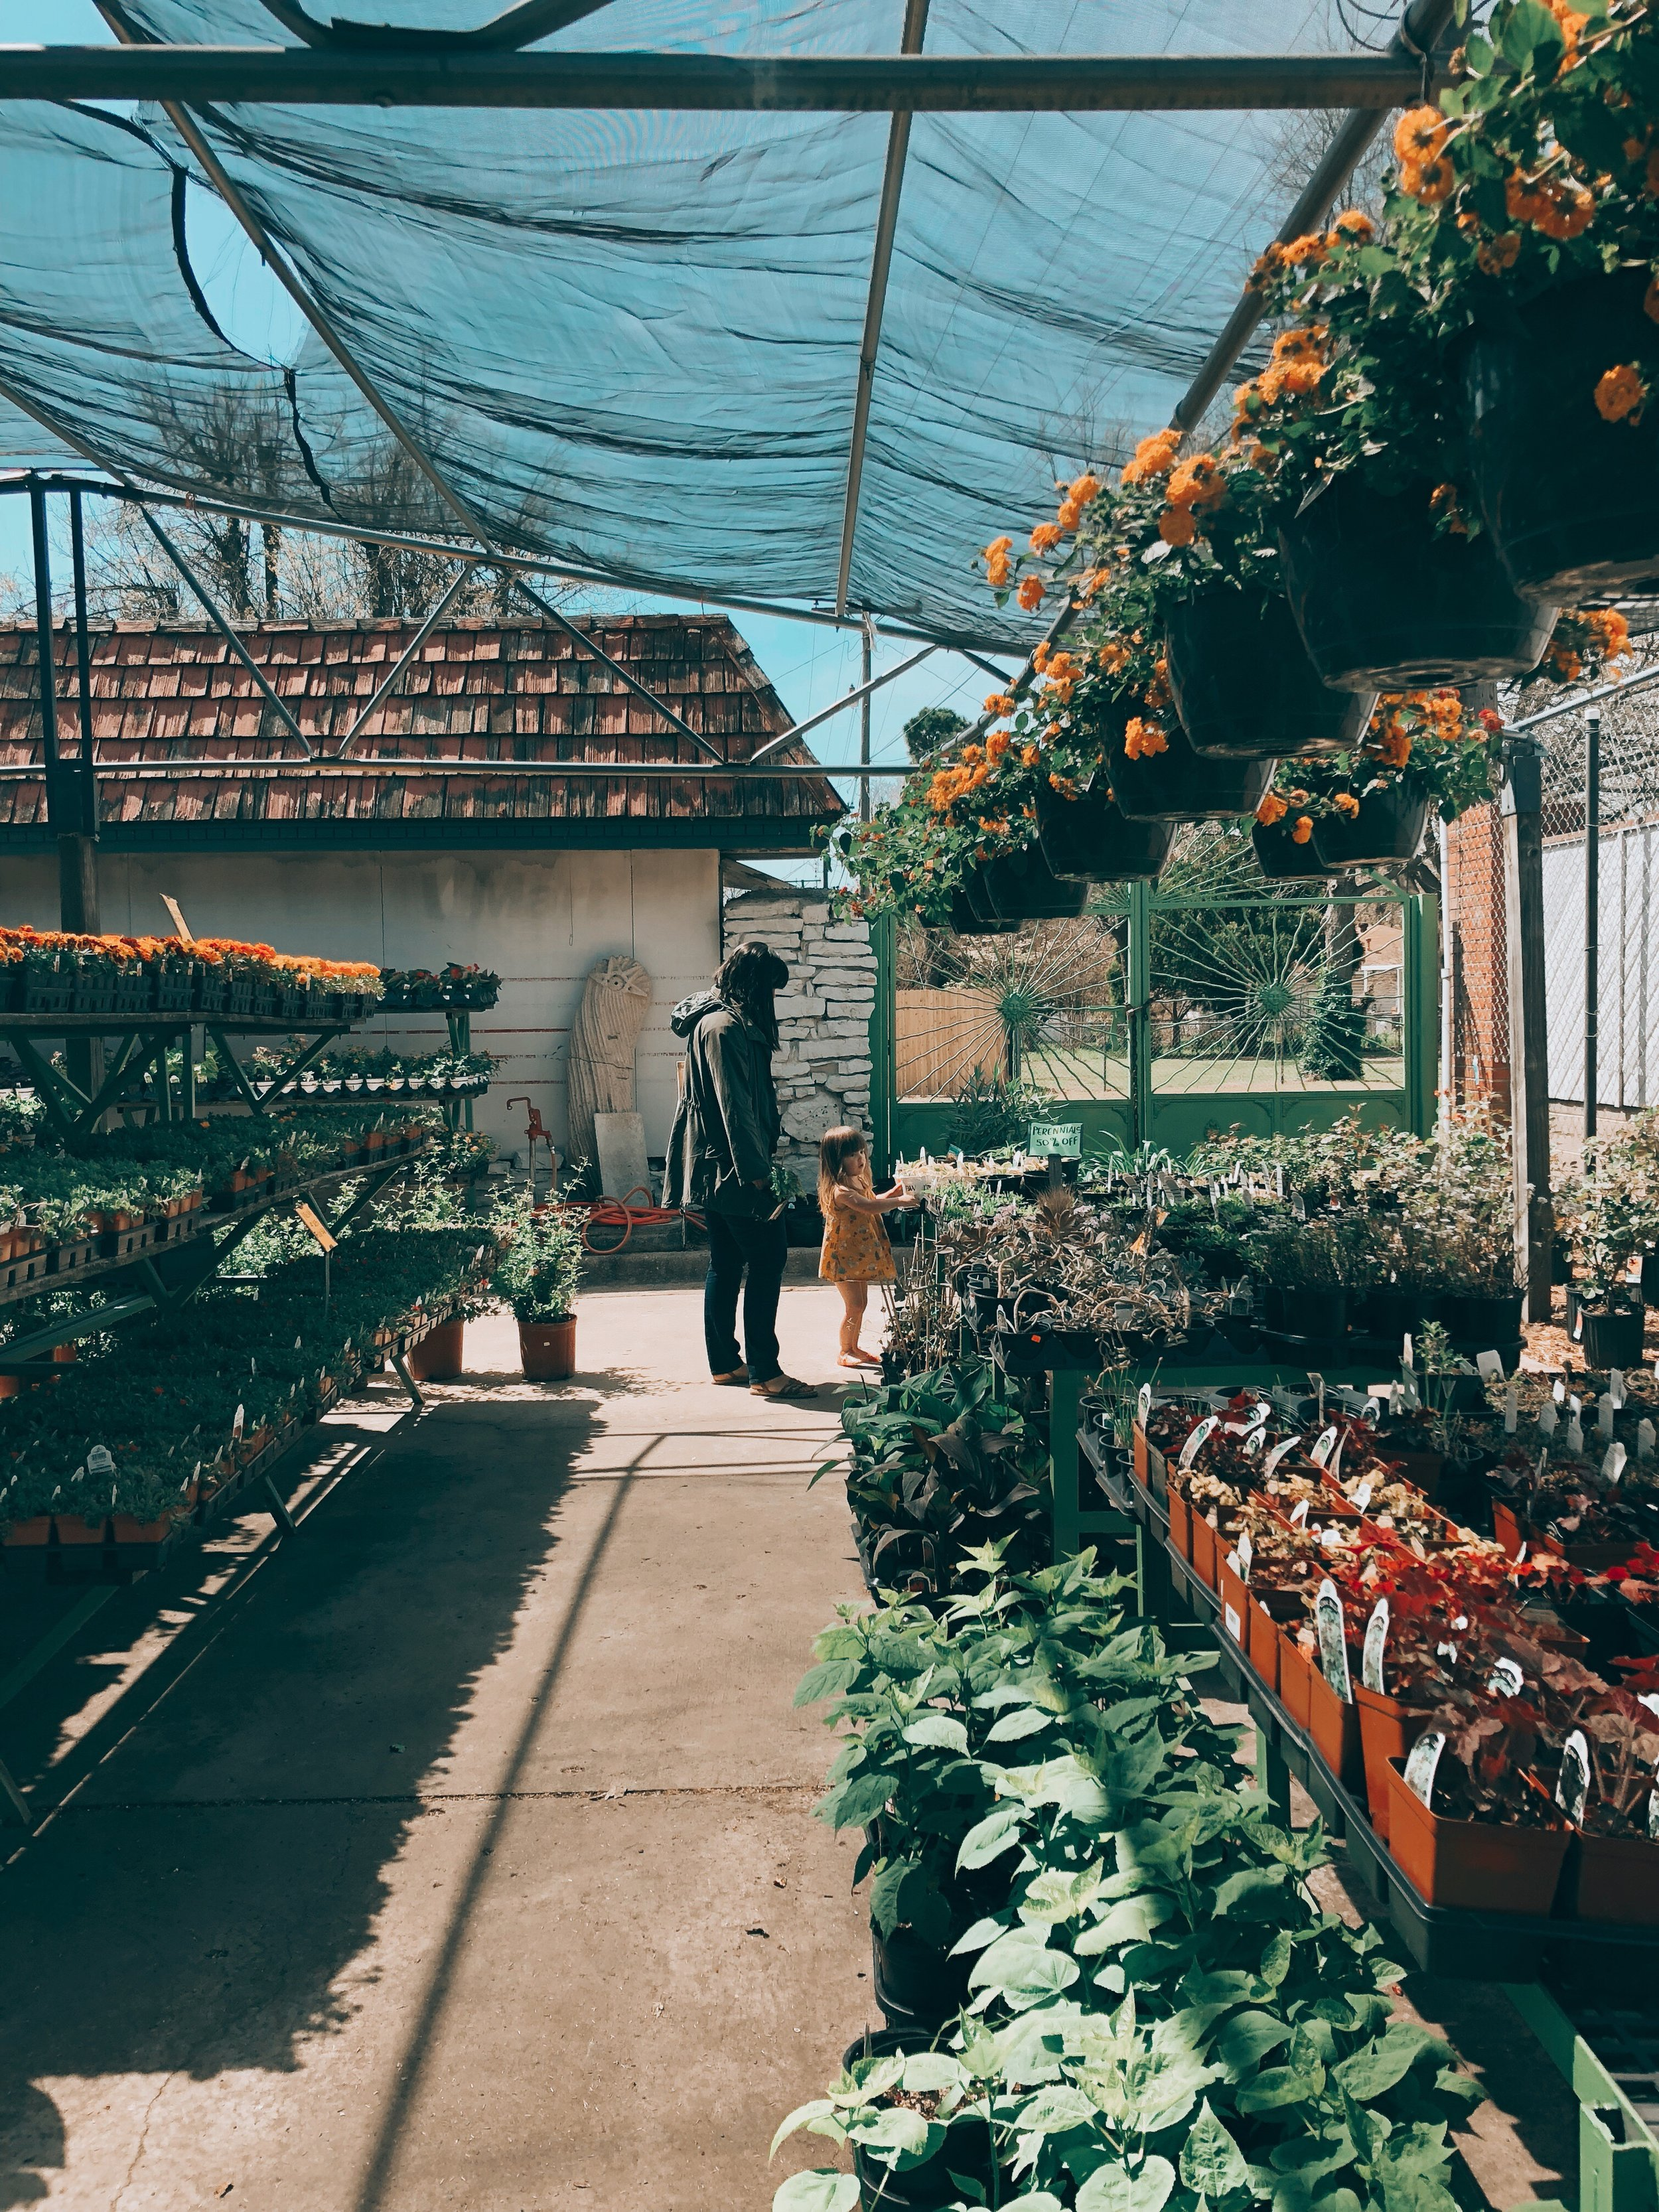 Daly has been making the rounds to Tulsa's local nurseries. This past week, she checked out  Rancho Flores , and it did not disappoint. A nice curation + great prices on large pots. Photo:  You Are Photo Co.